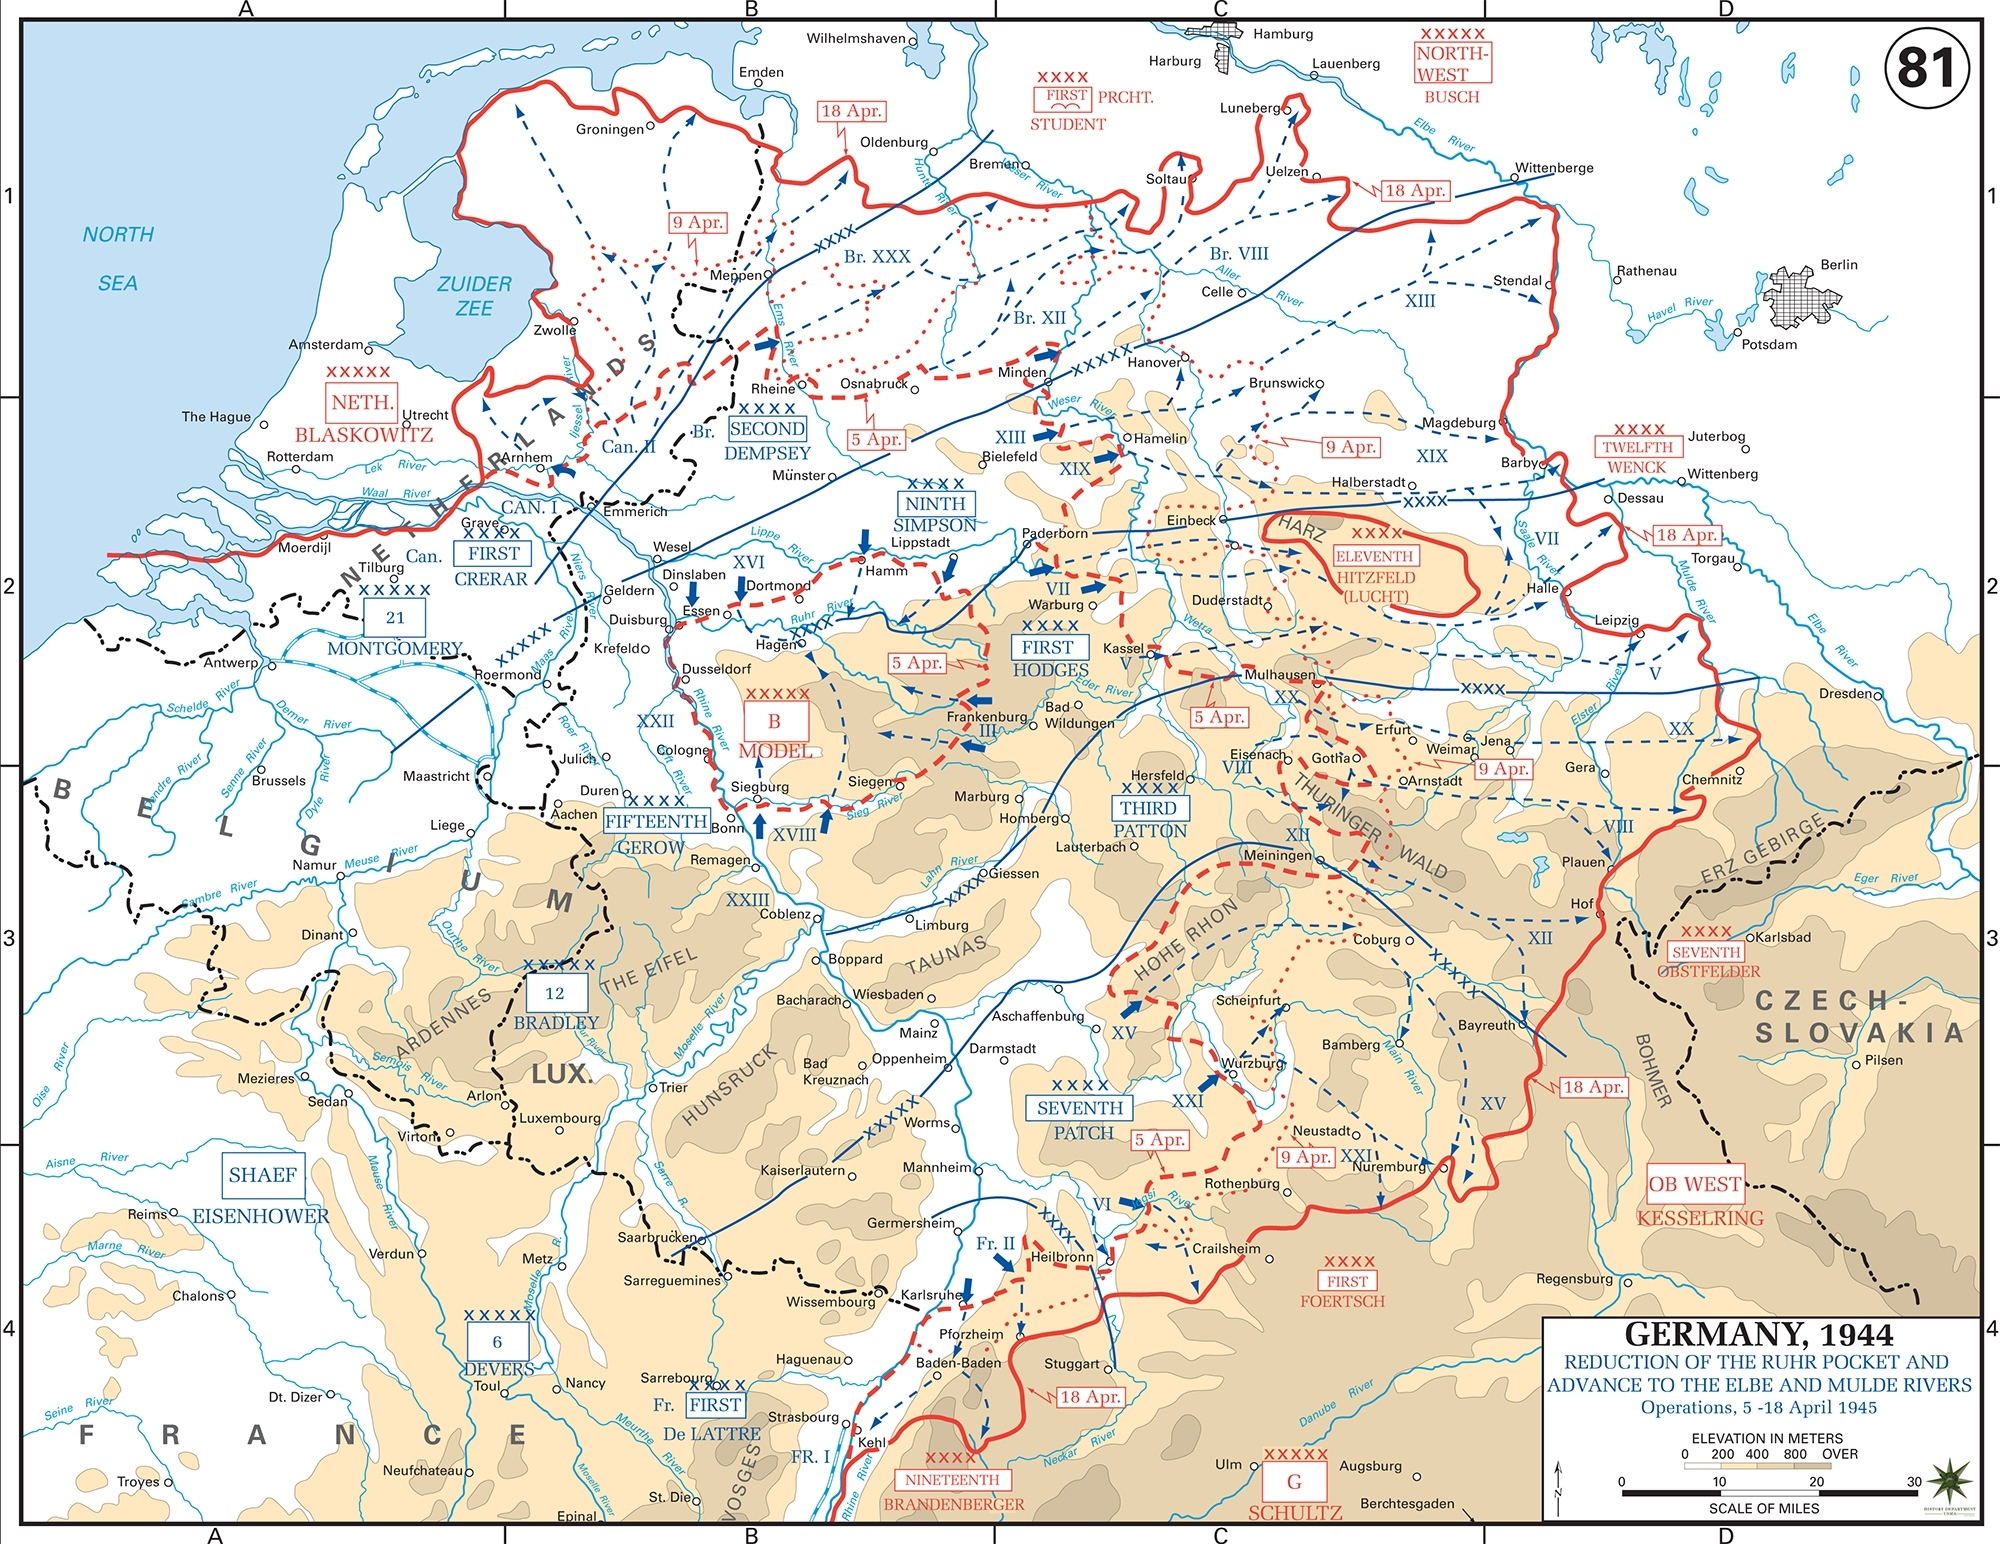 Map Of Wwii: Germany April 1945 in Map Of Germany During World War 2